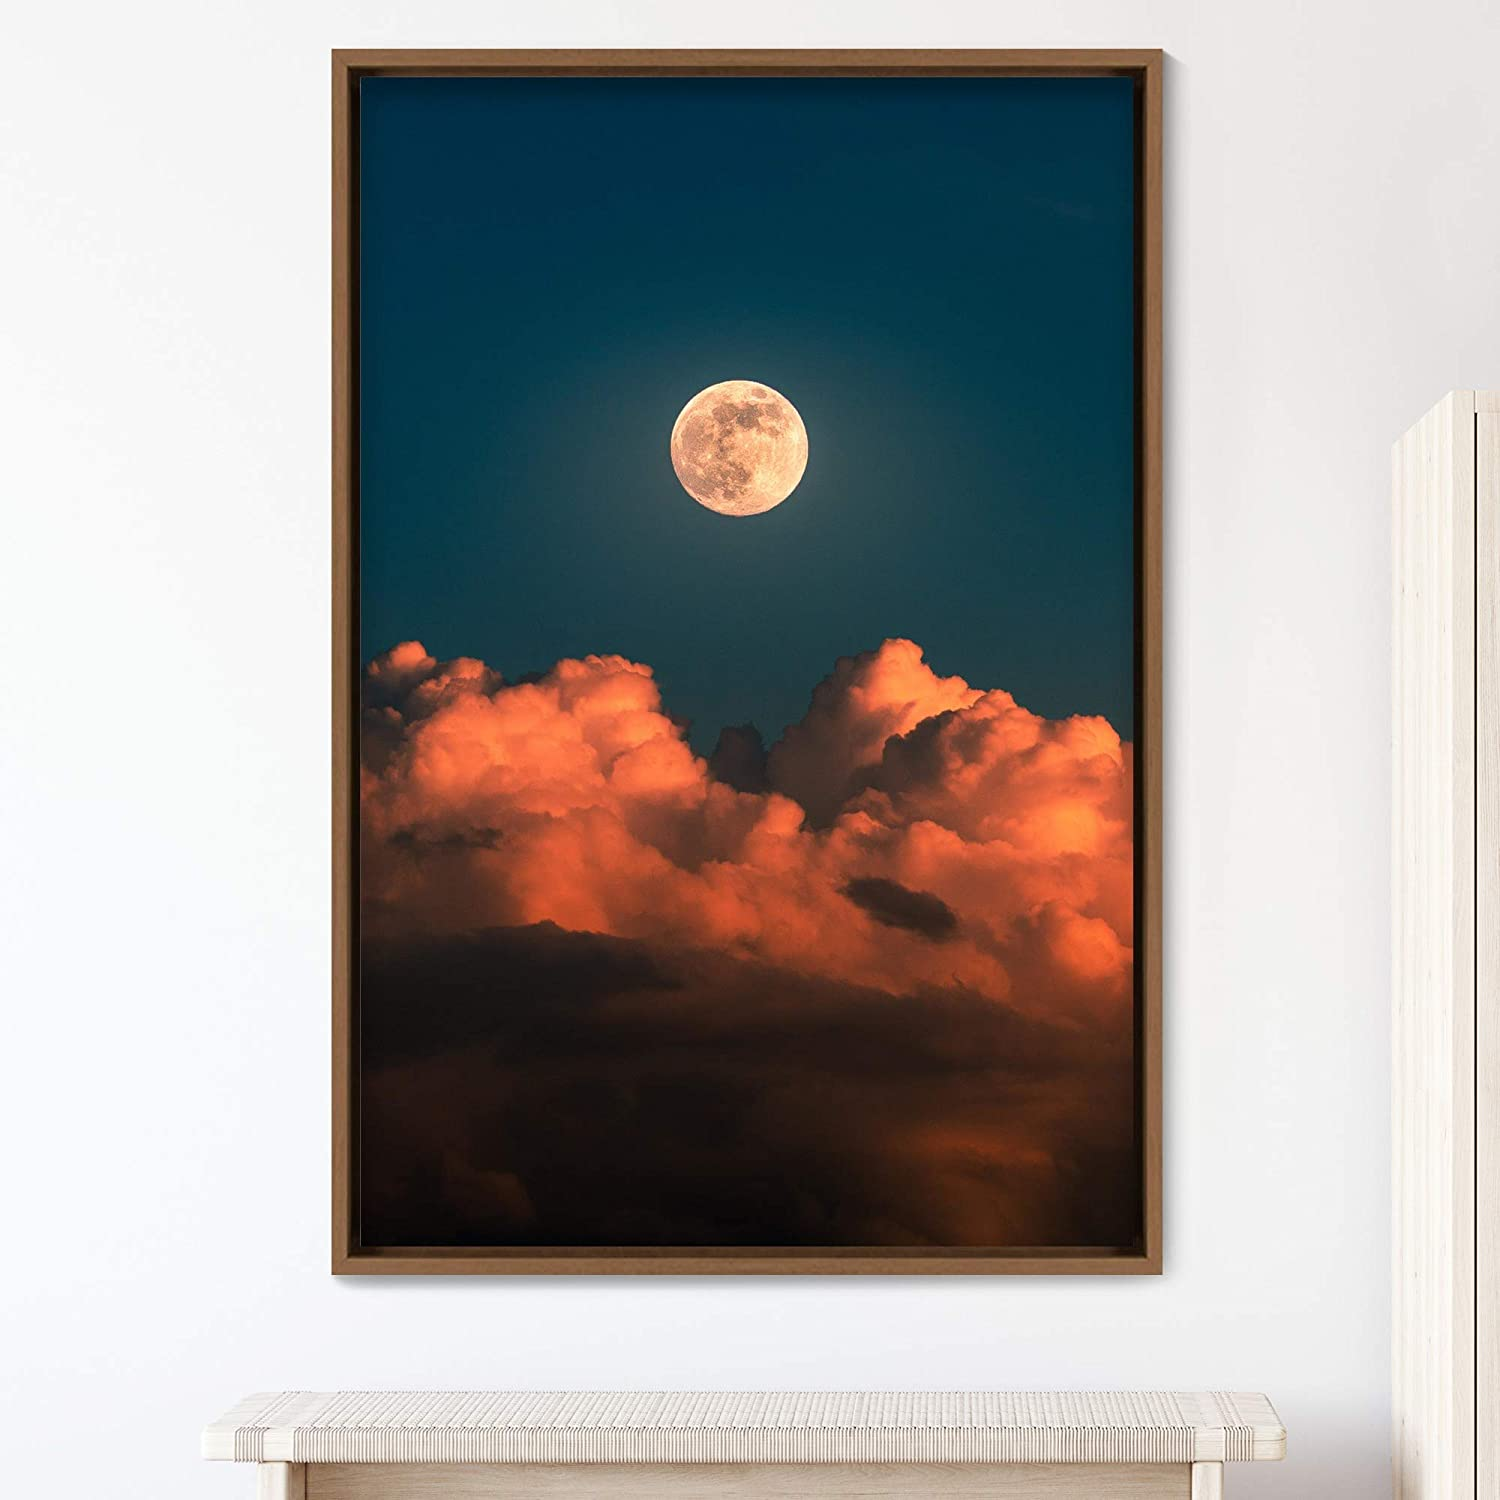 signwin Framed Purchase Canvas Wall Art Co Moon Space Bedroom Ranking TOP12 Astronomy